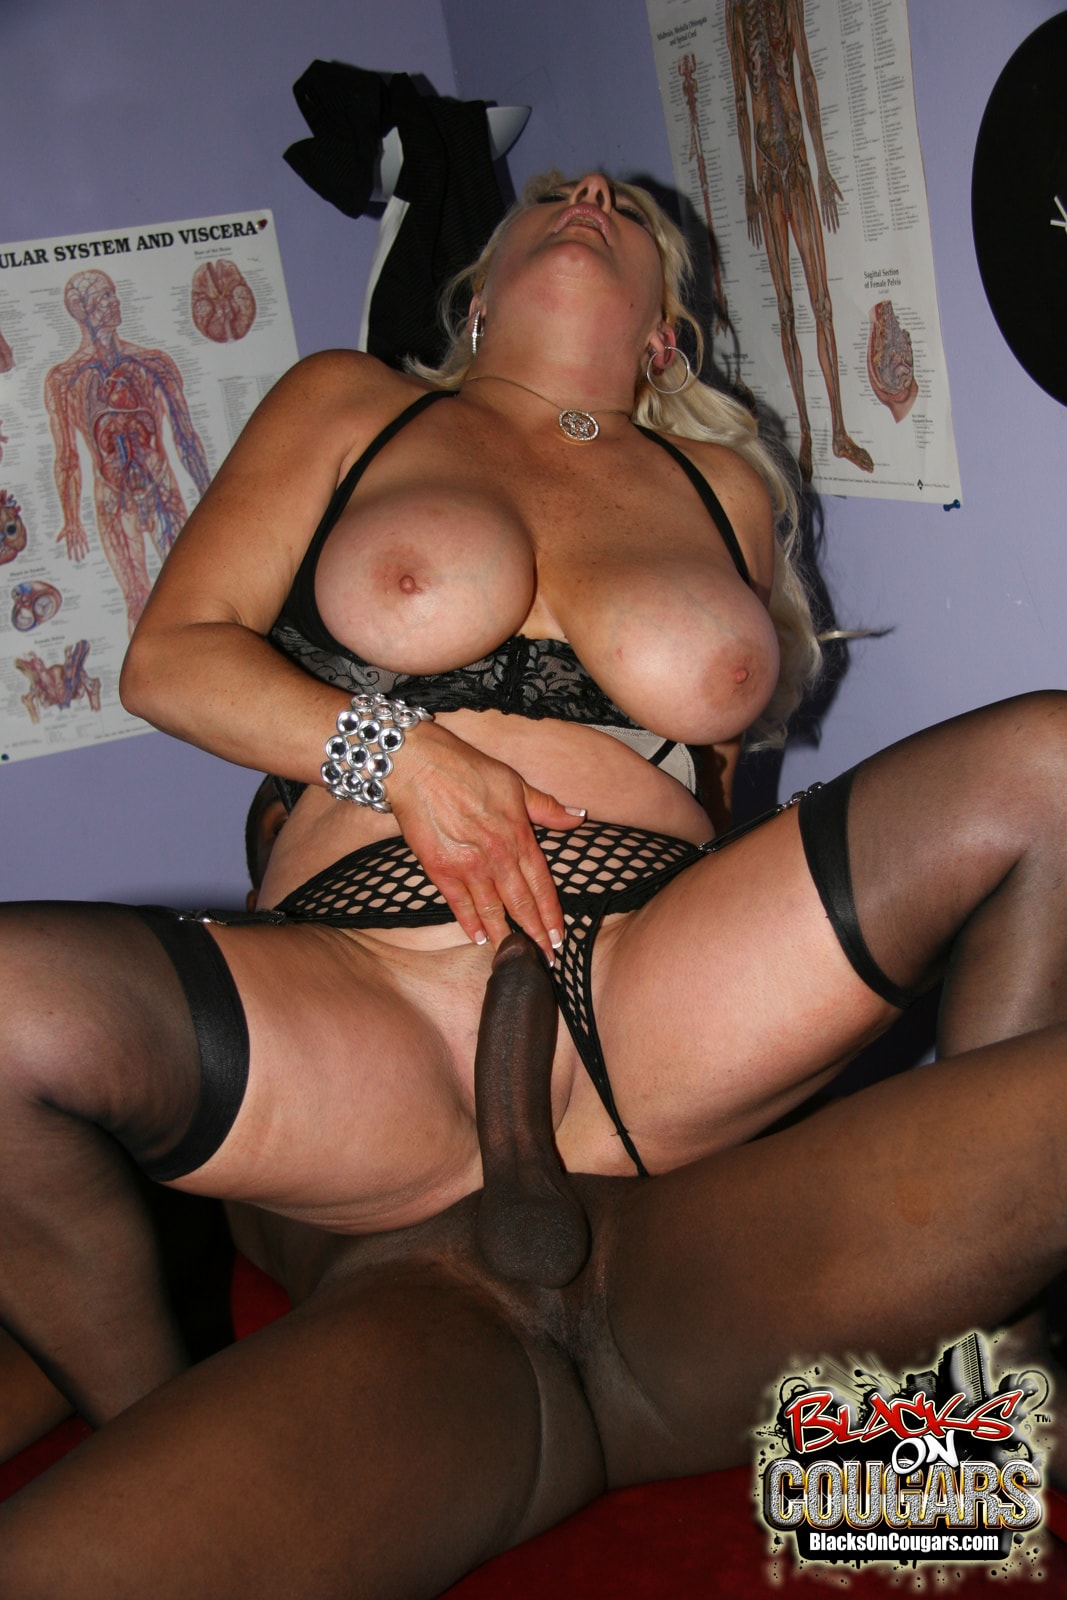 Dogfart '- Blacks On Cougars' starring Dana Hayes (Photo 28)